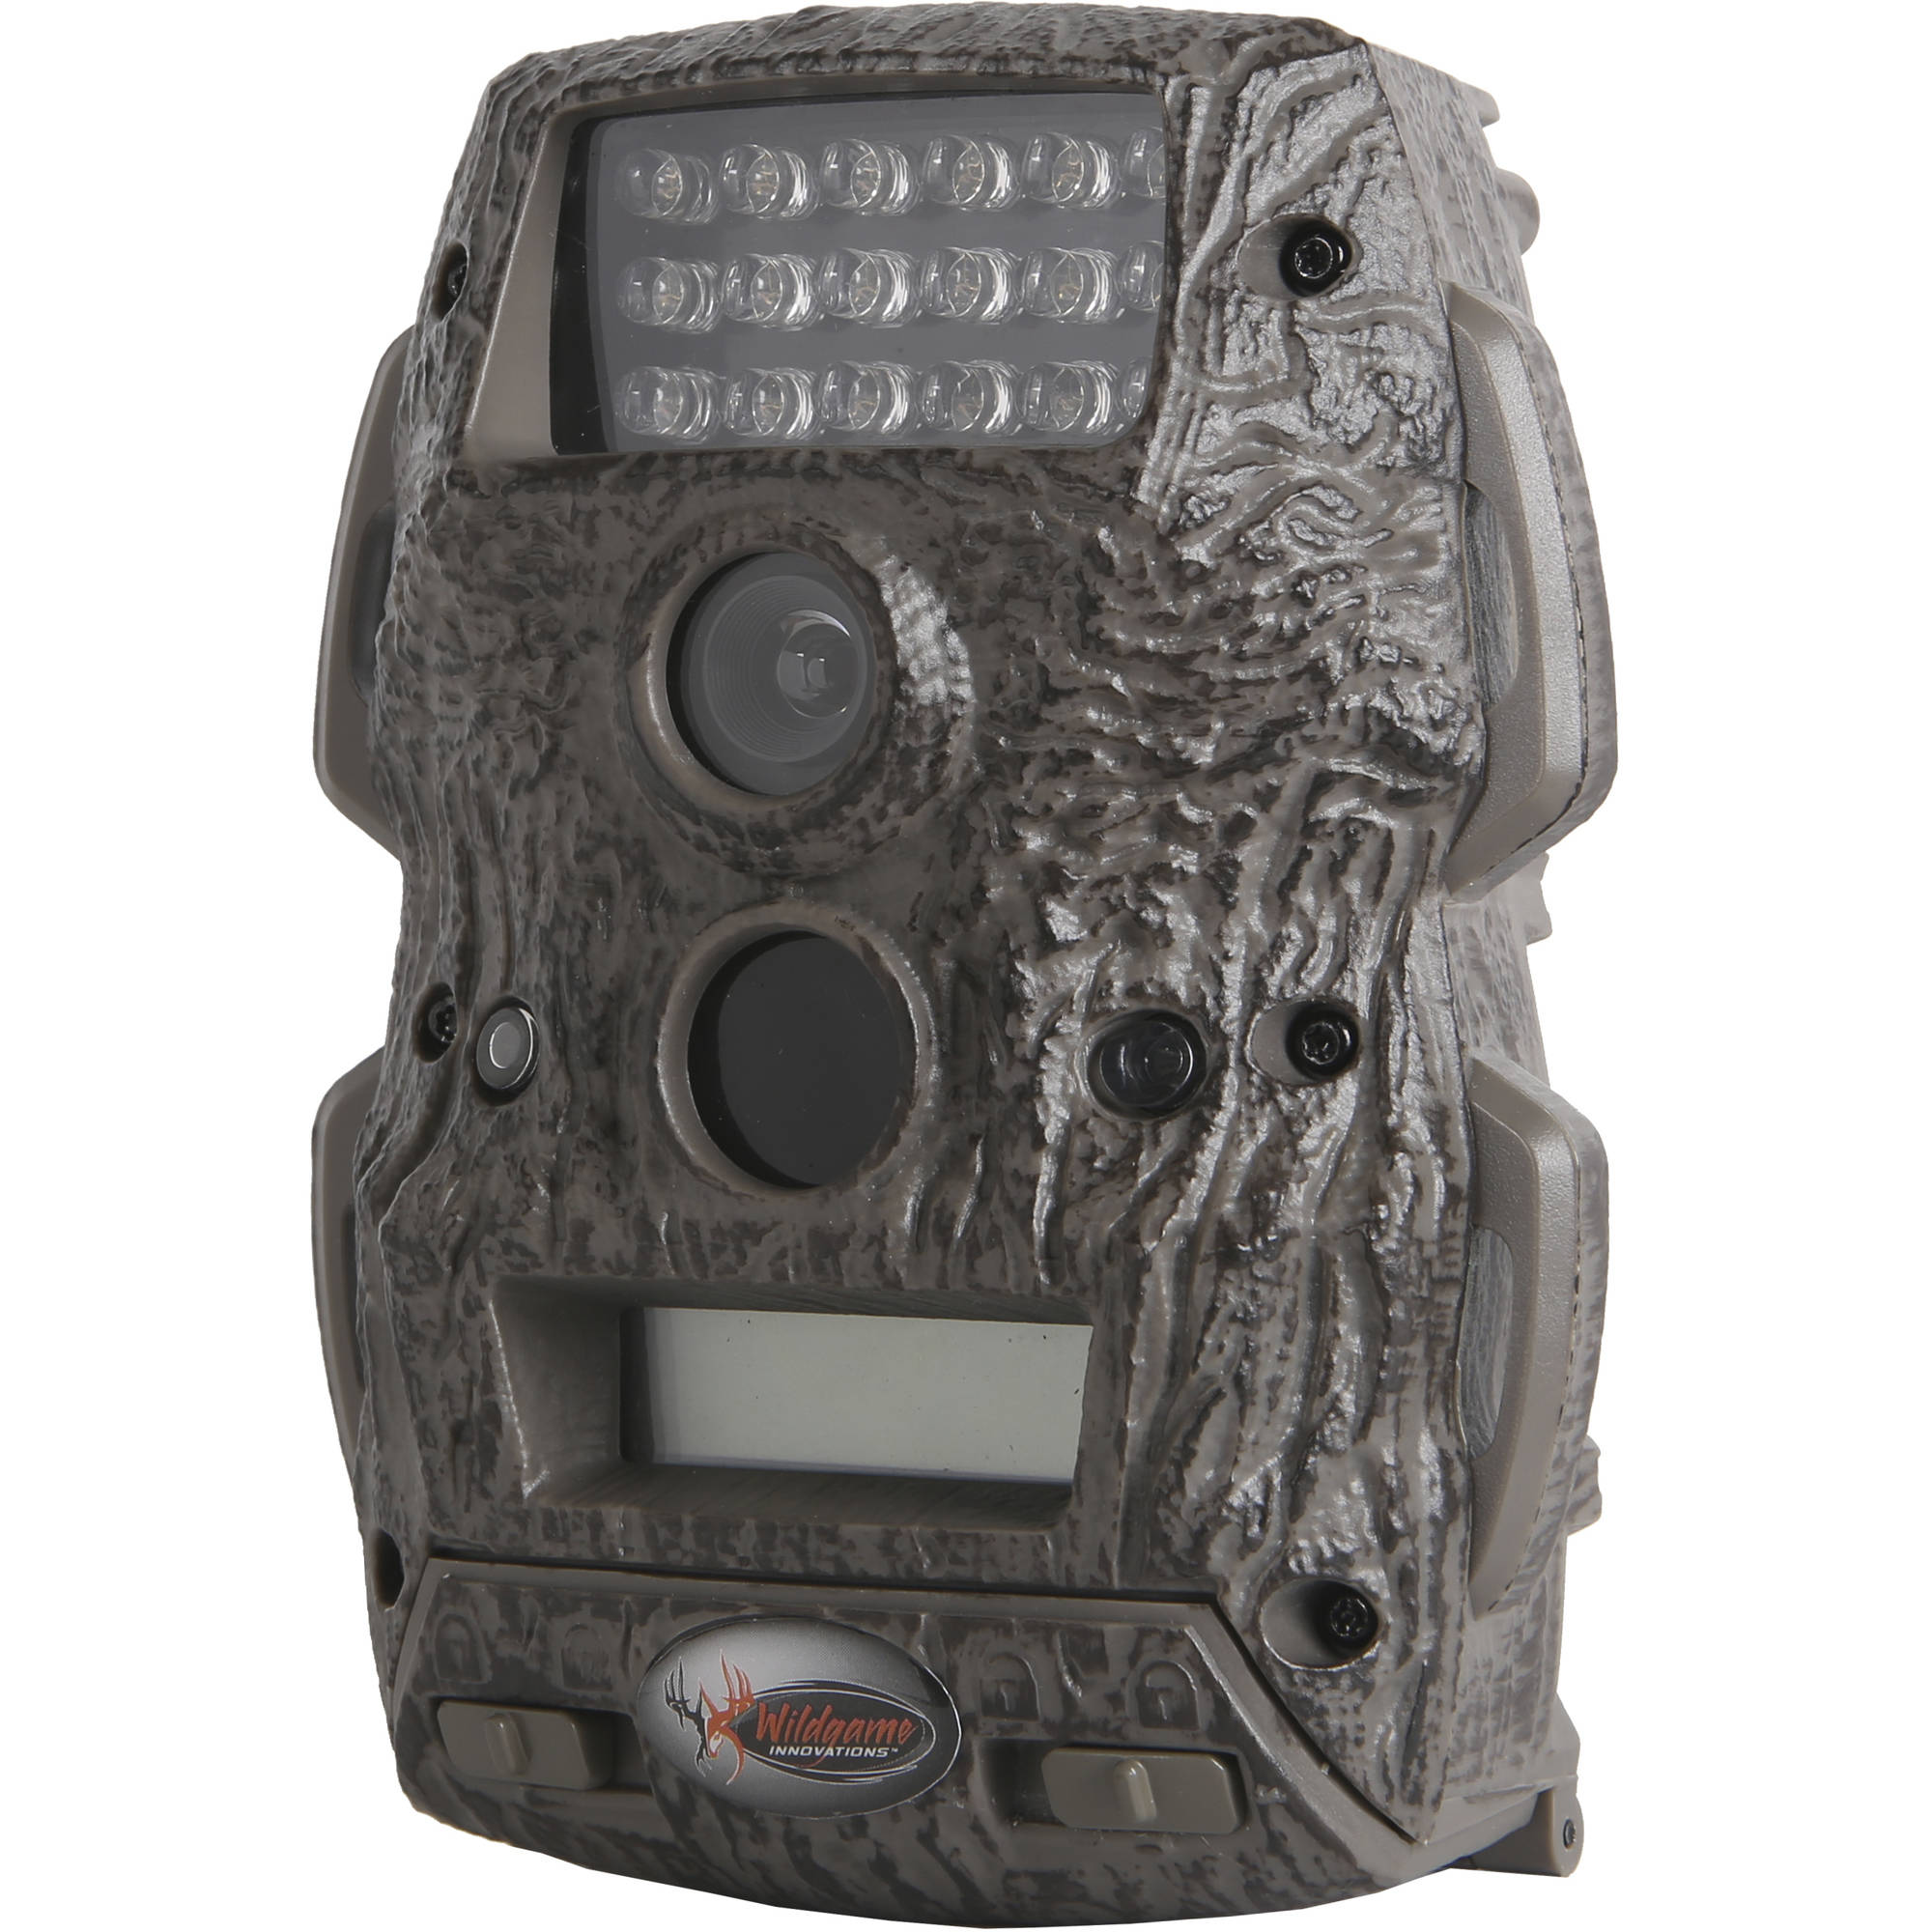 Game Cameras for Hunting